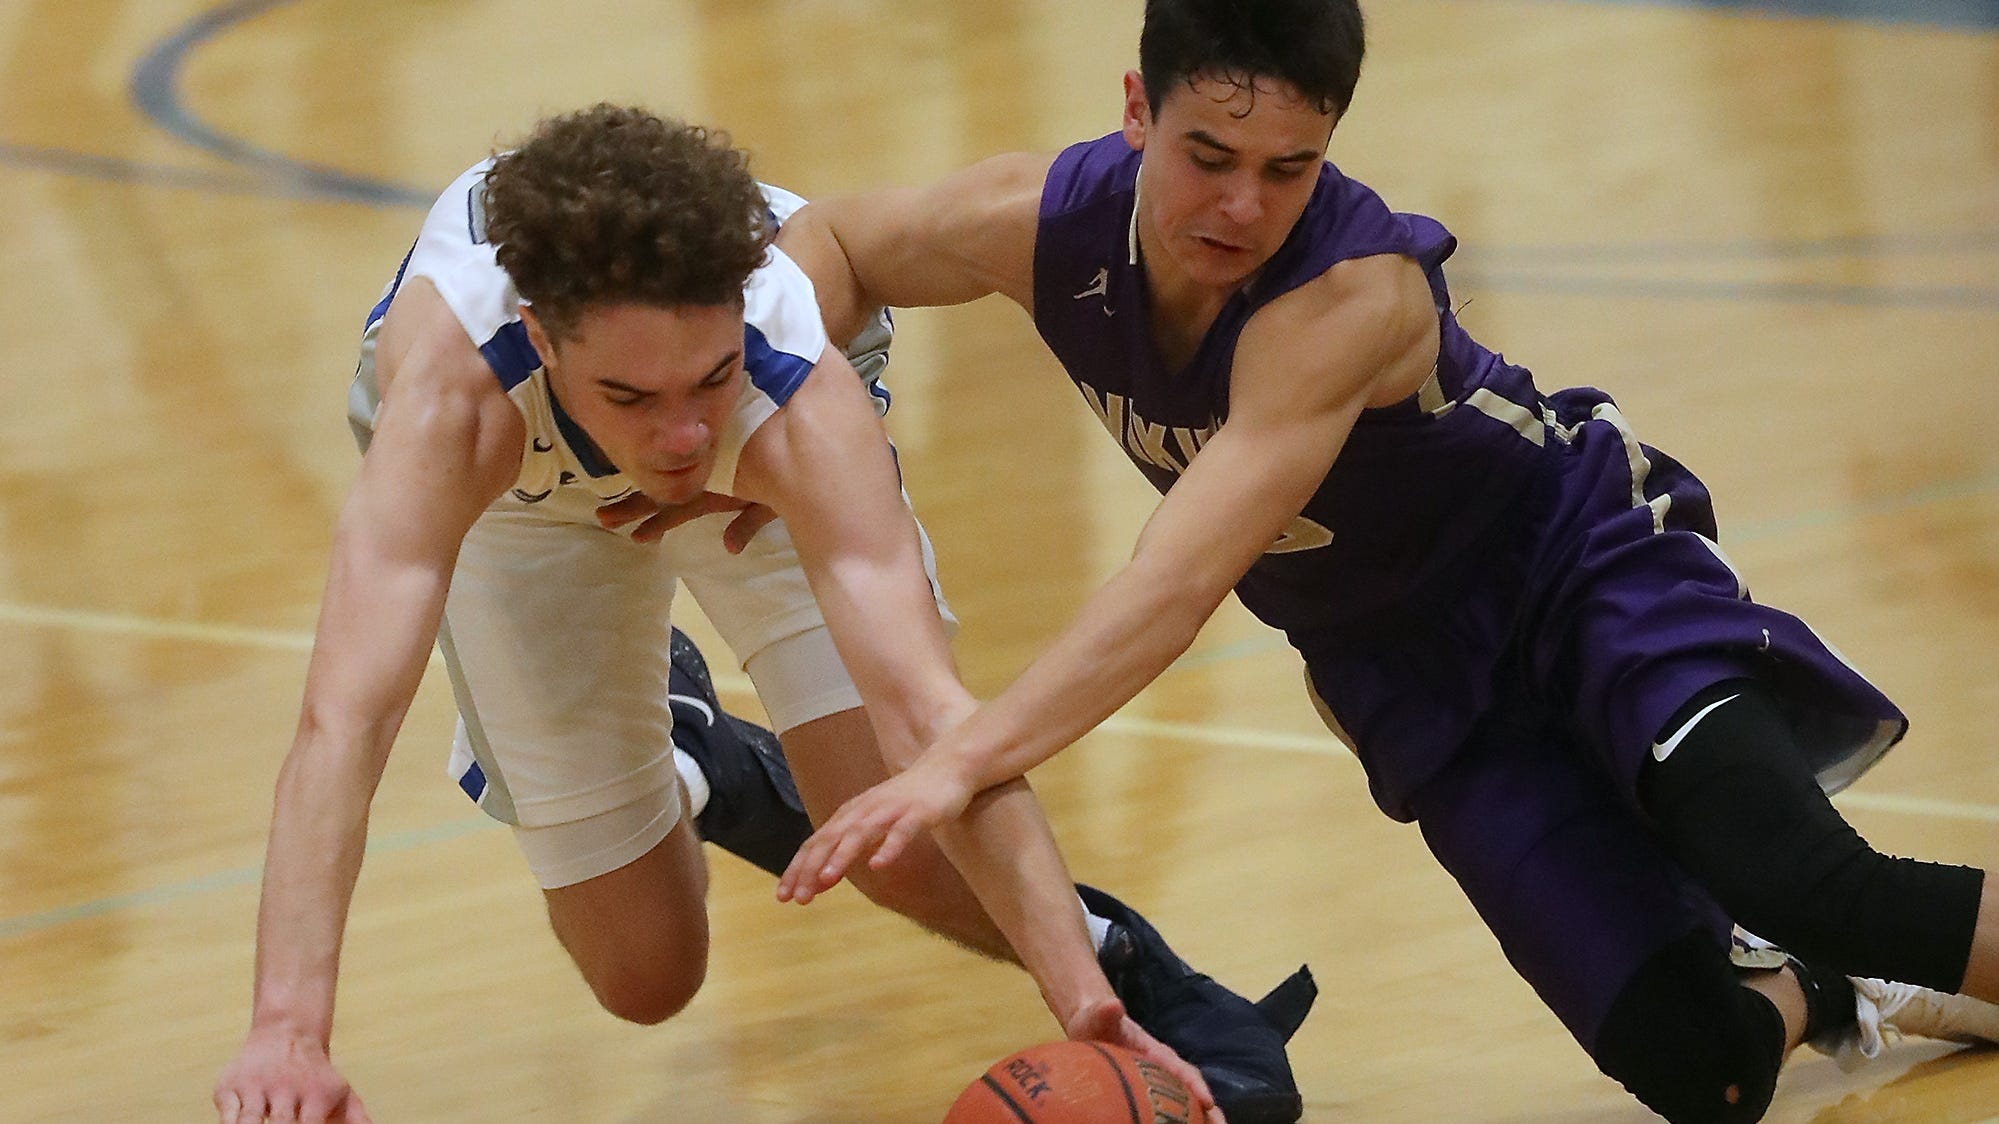 Olympic's Caleb Morgan (left) and North Kitsap's Johny Olmsted dive for a loose ball during their game at Olympic High on Friday, December 14, 2018.